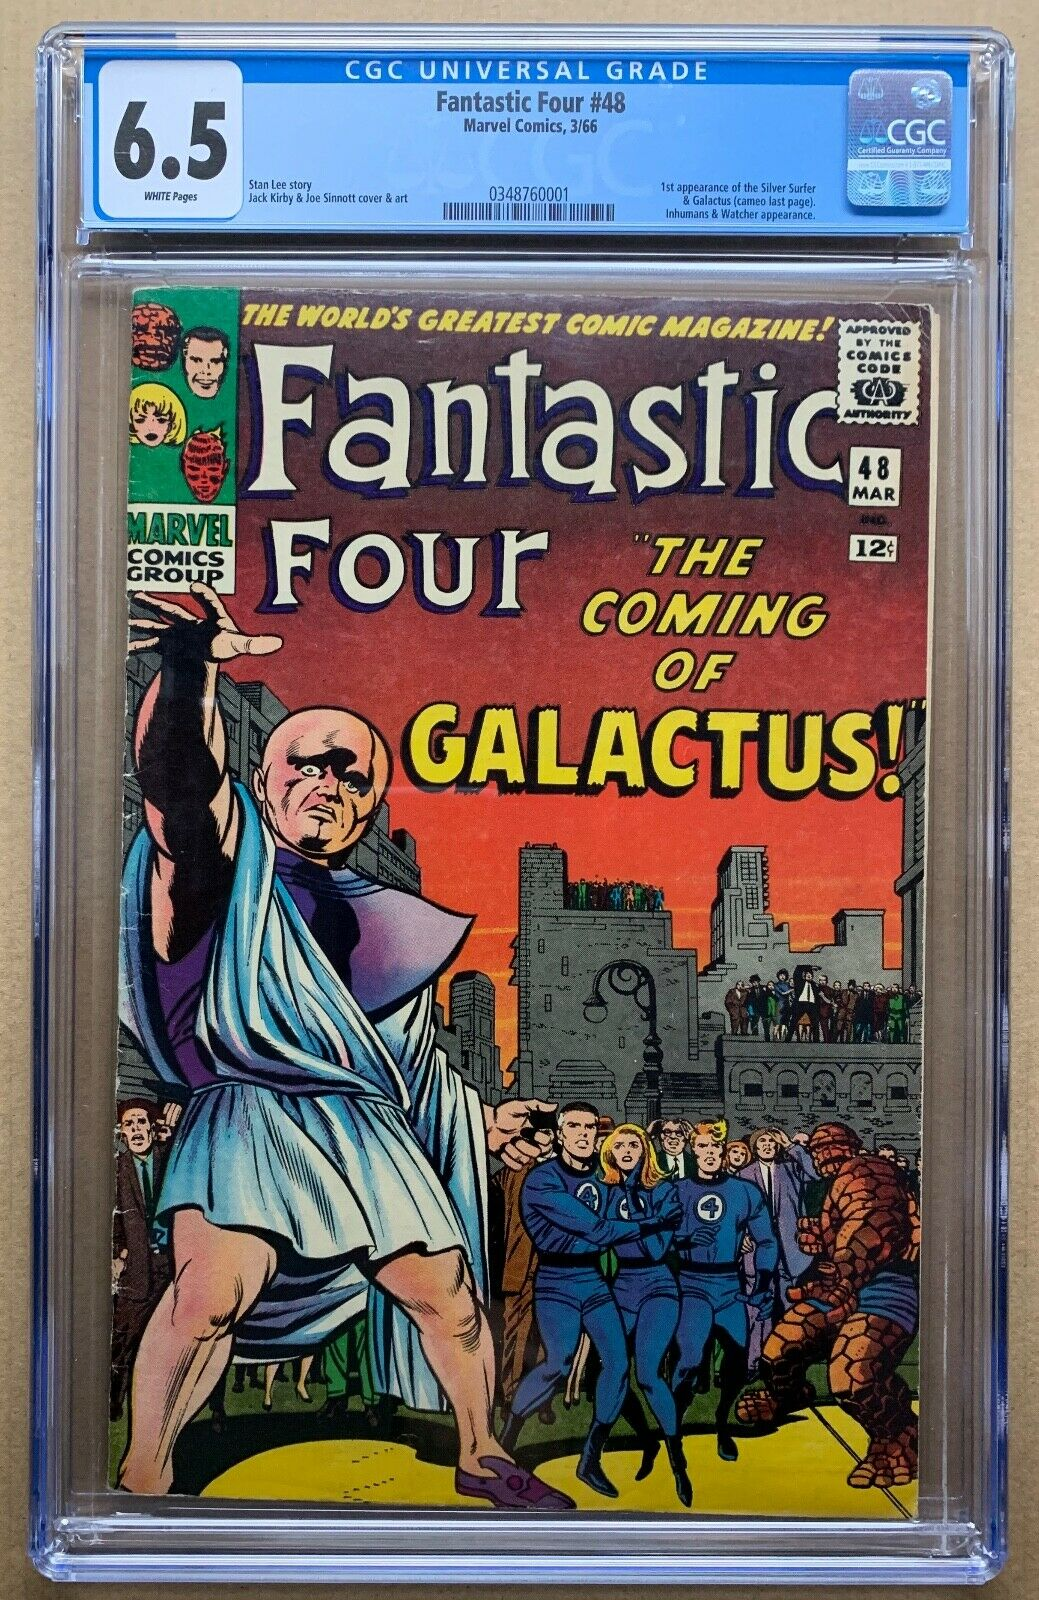 Fantastic Four #48 CGC 6.5 WHITE - First app of Silver Surfer/Galactus (cameo)